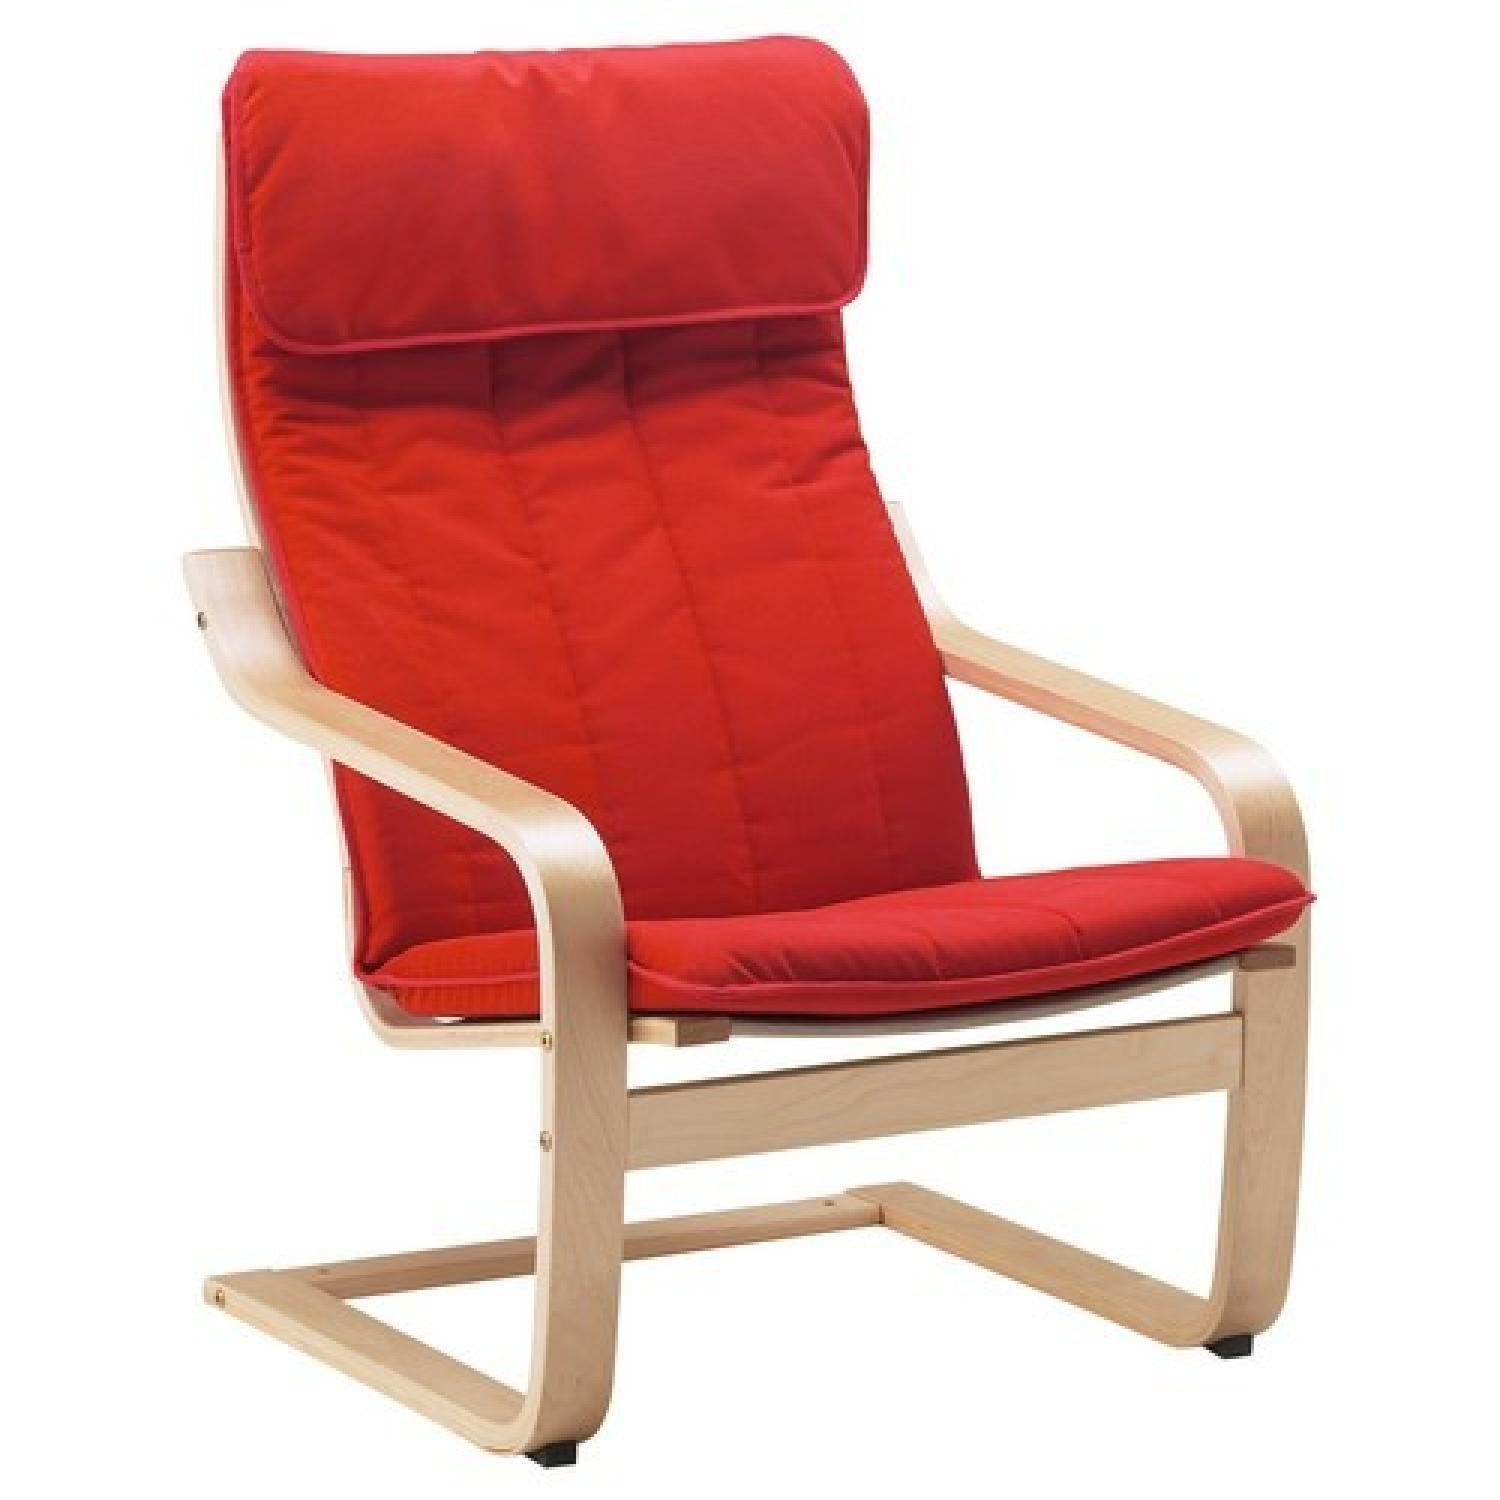 Ikea Recliner Chair - image-3